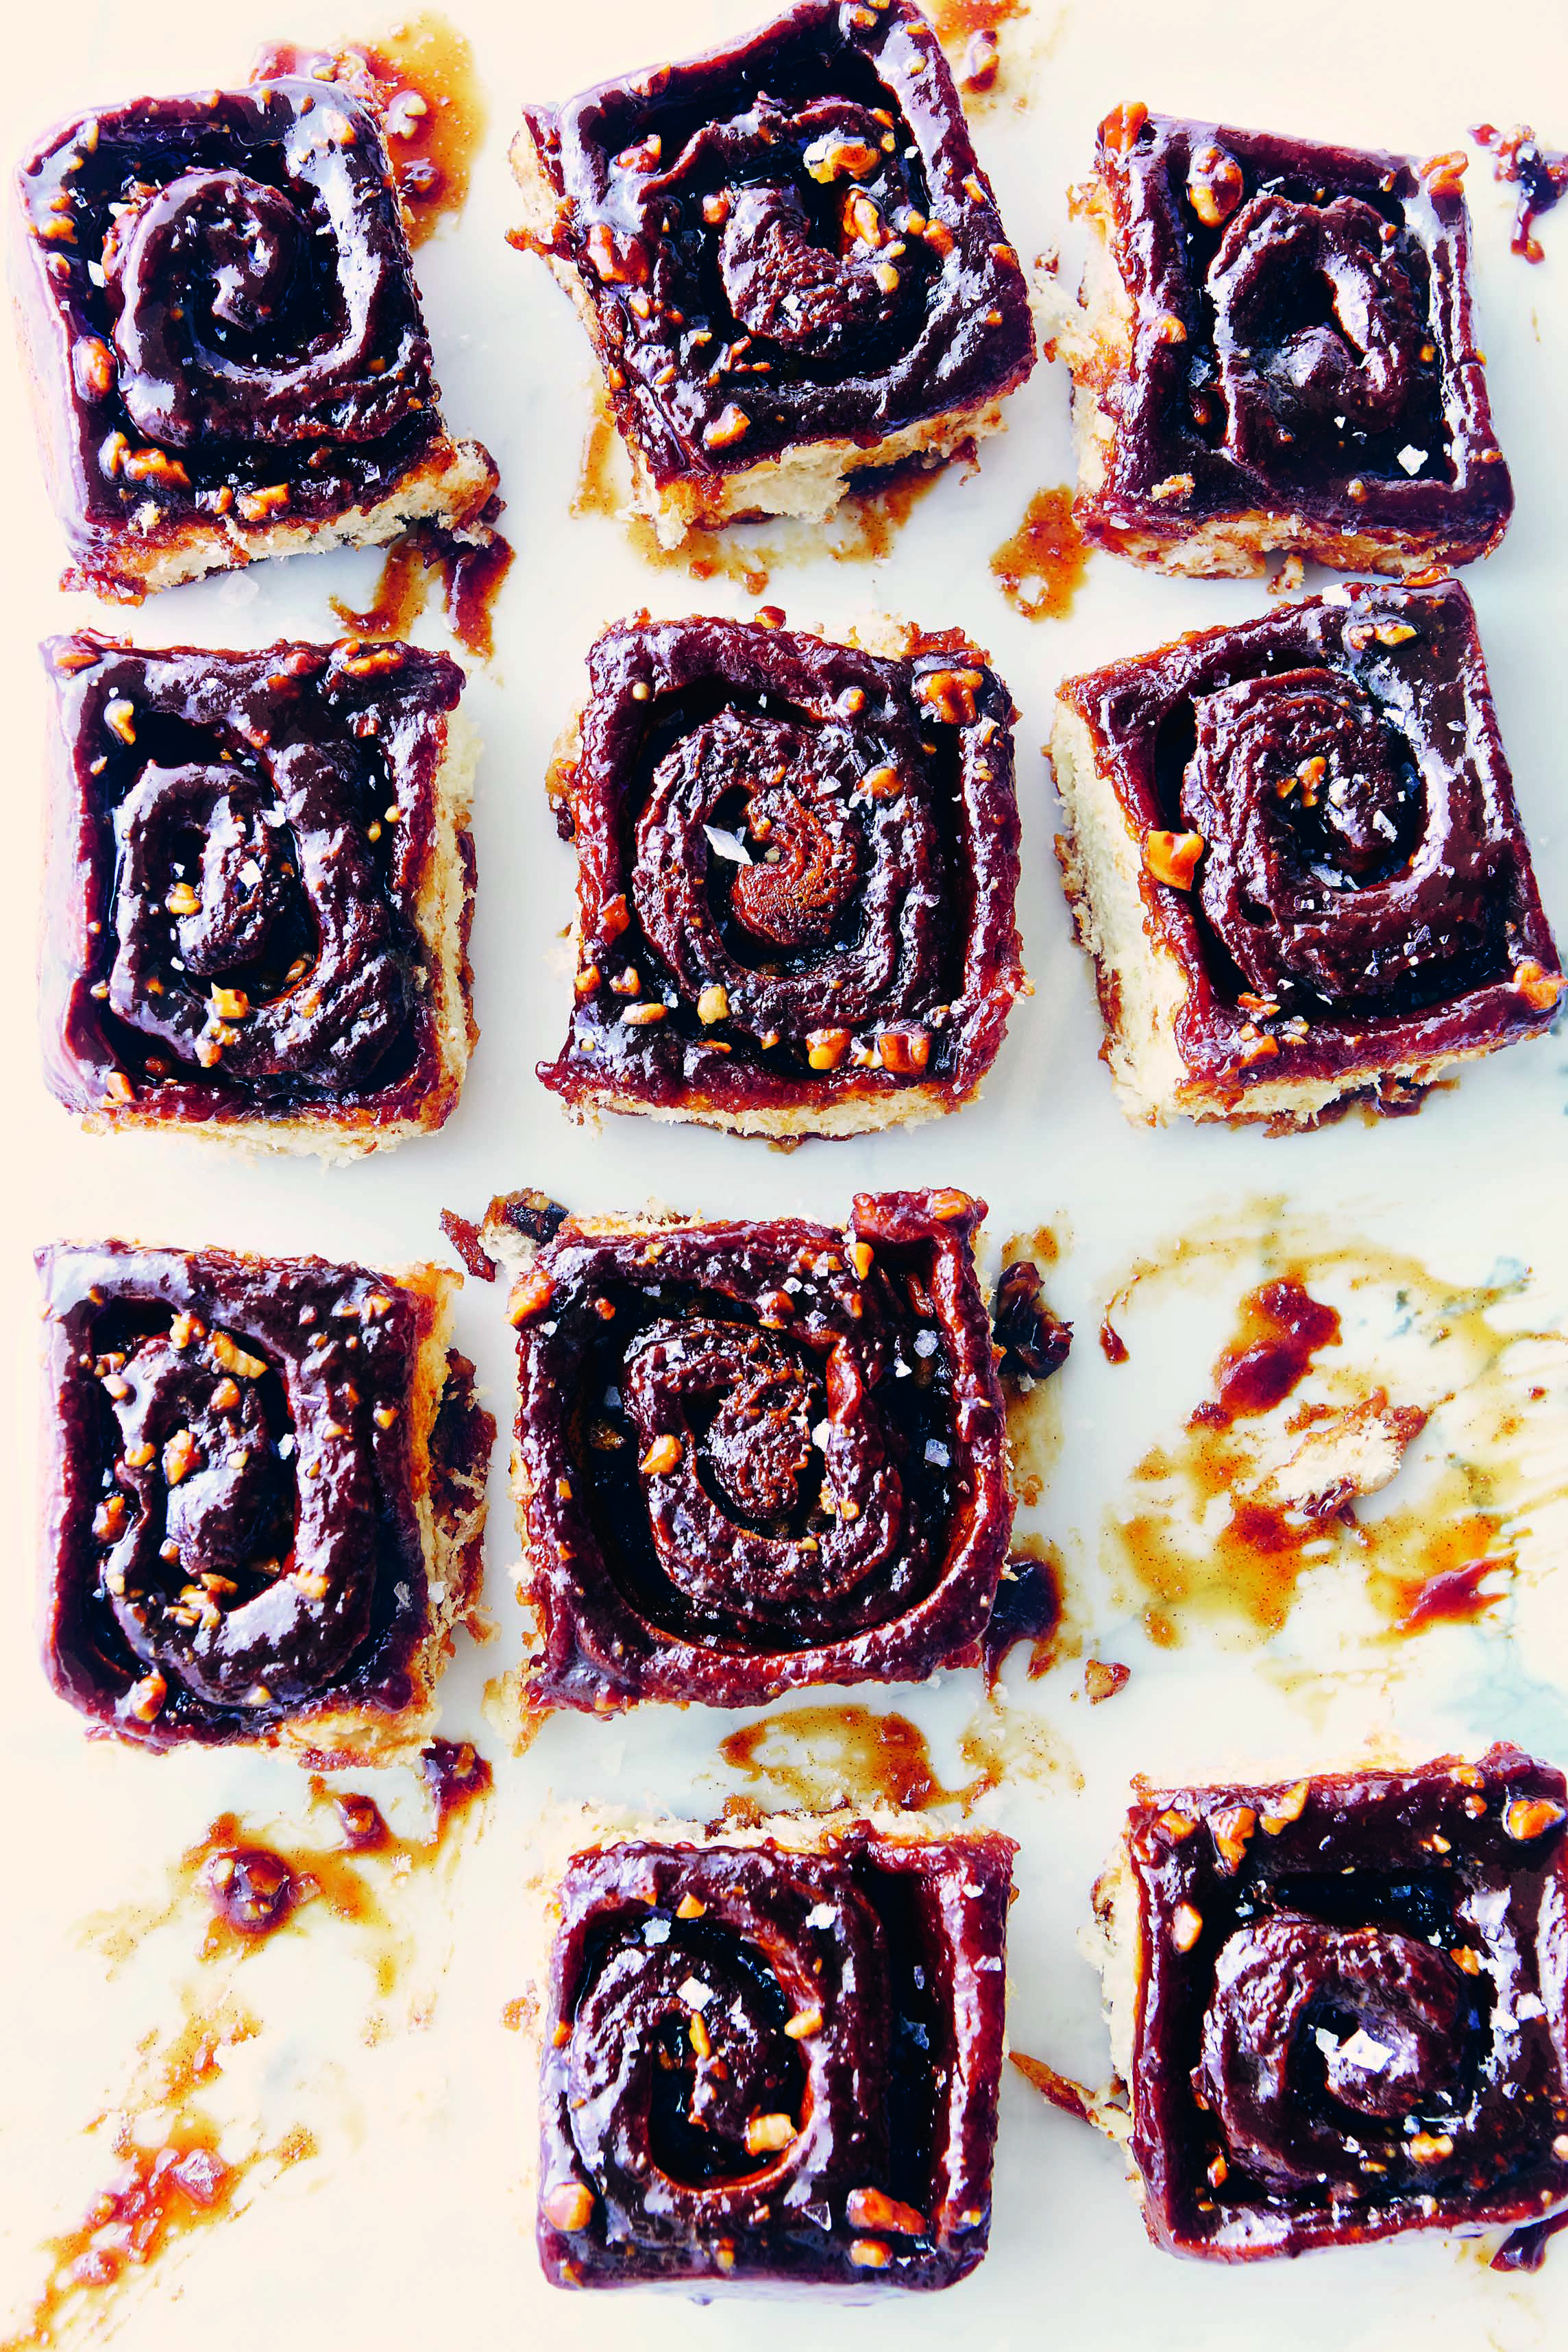 Burnt Caramel and Sea Salt Sticky Buns from The Messy Baker cookbook